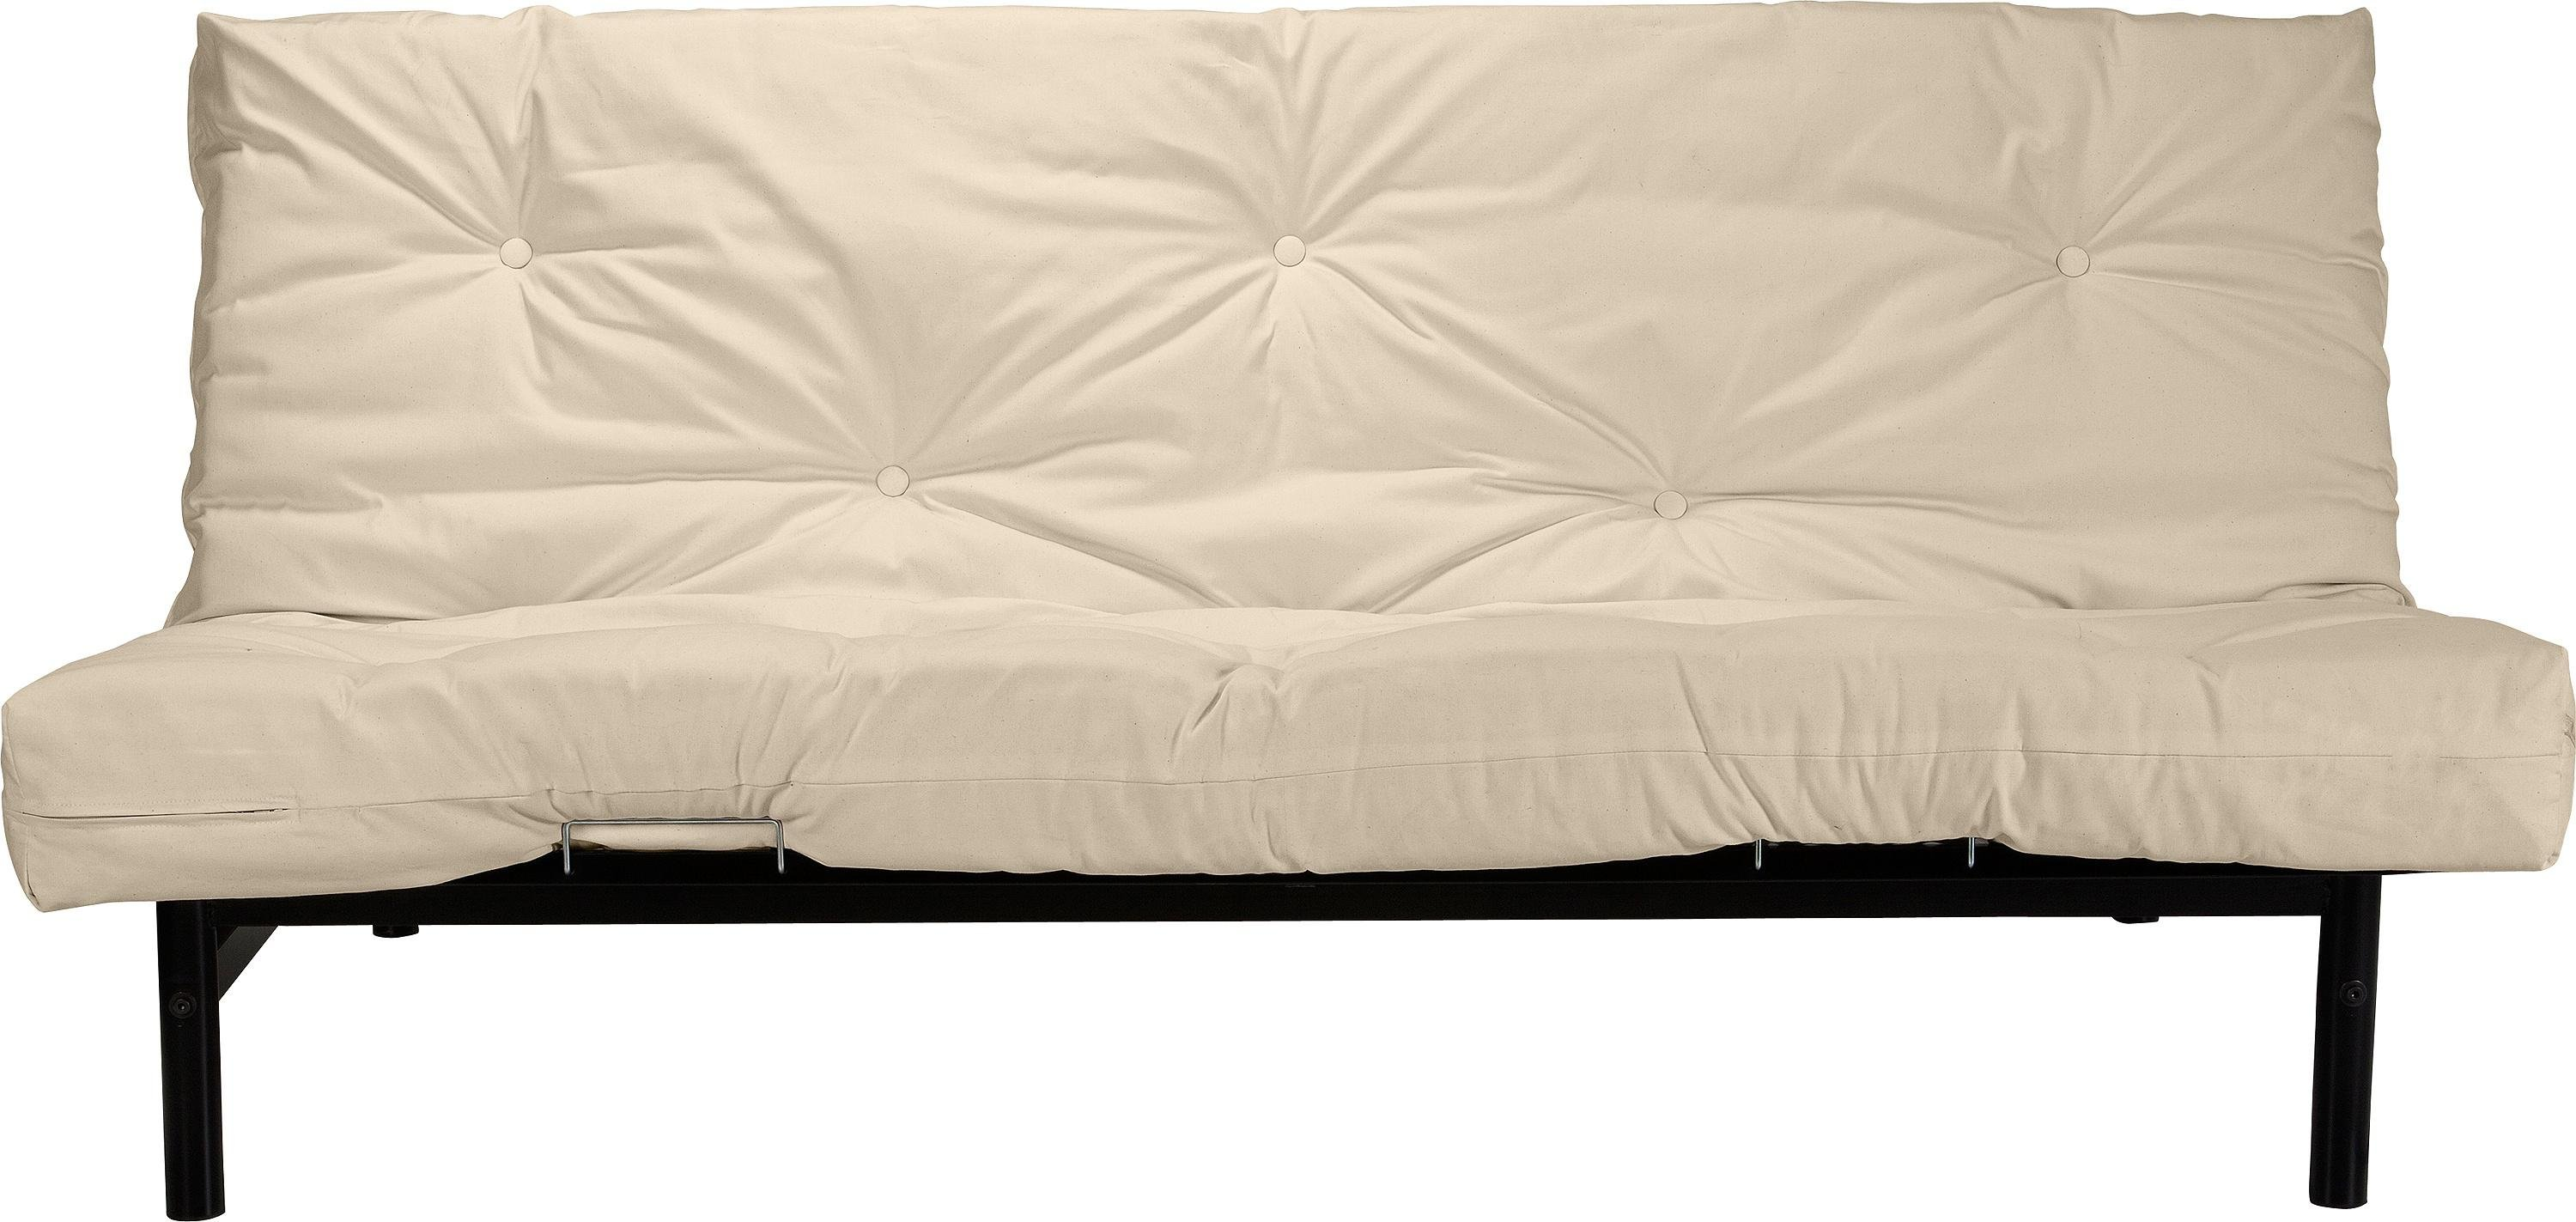 Image of ColourMatch - Clive - 2 Seater - Futon - Sofa Bed - Cotton Cream